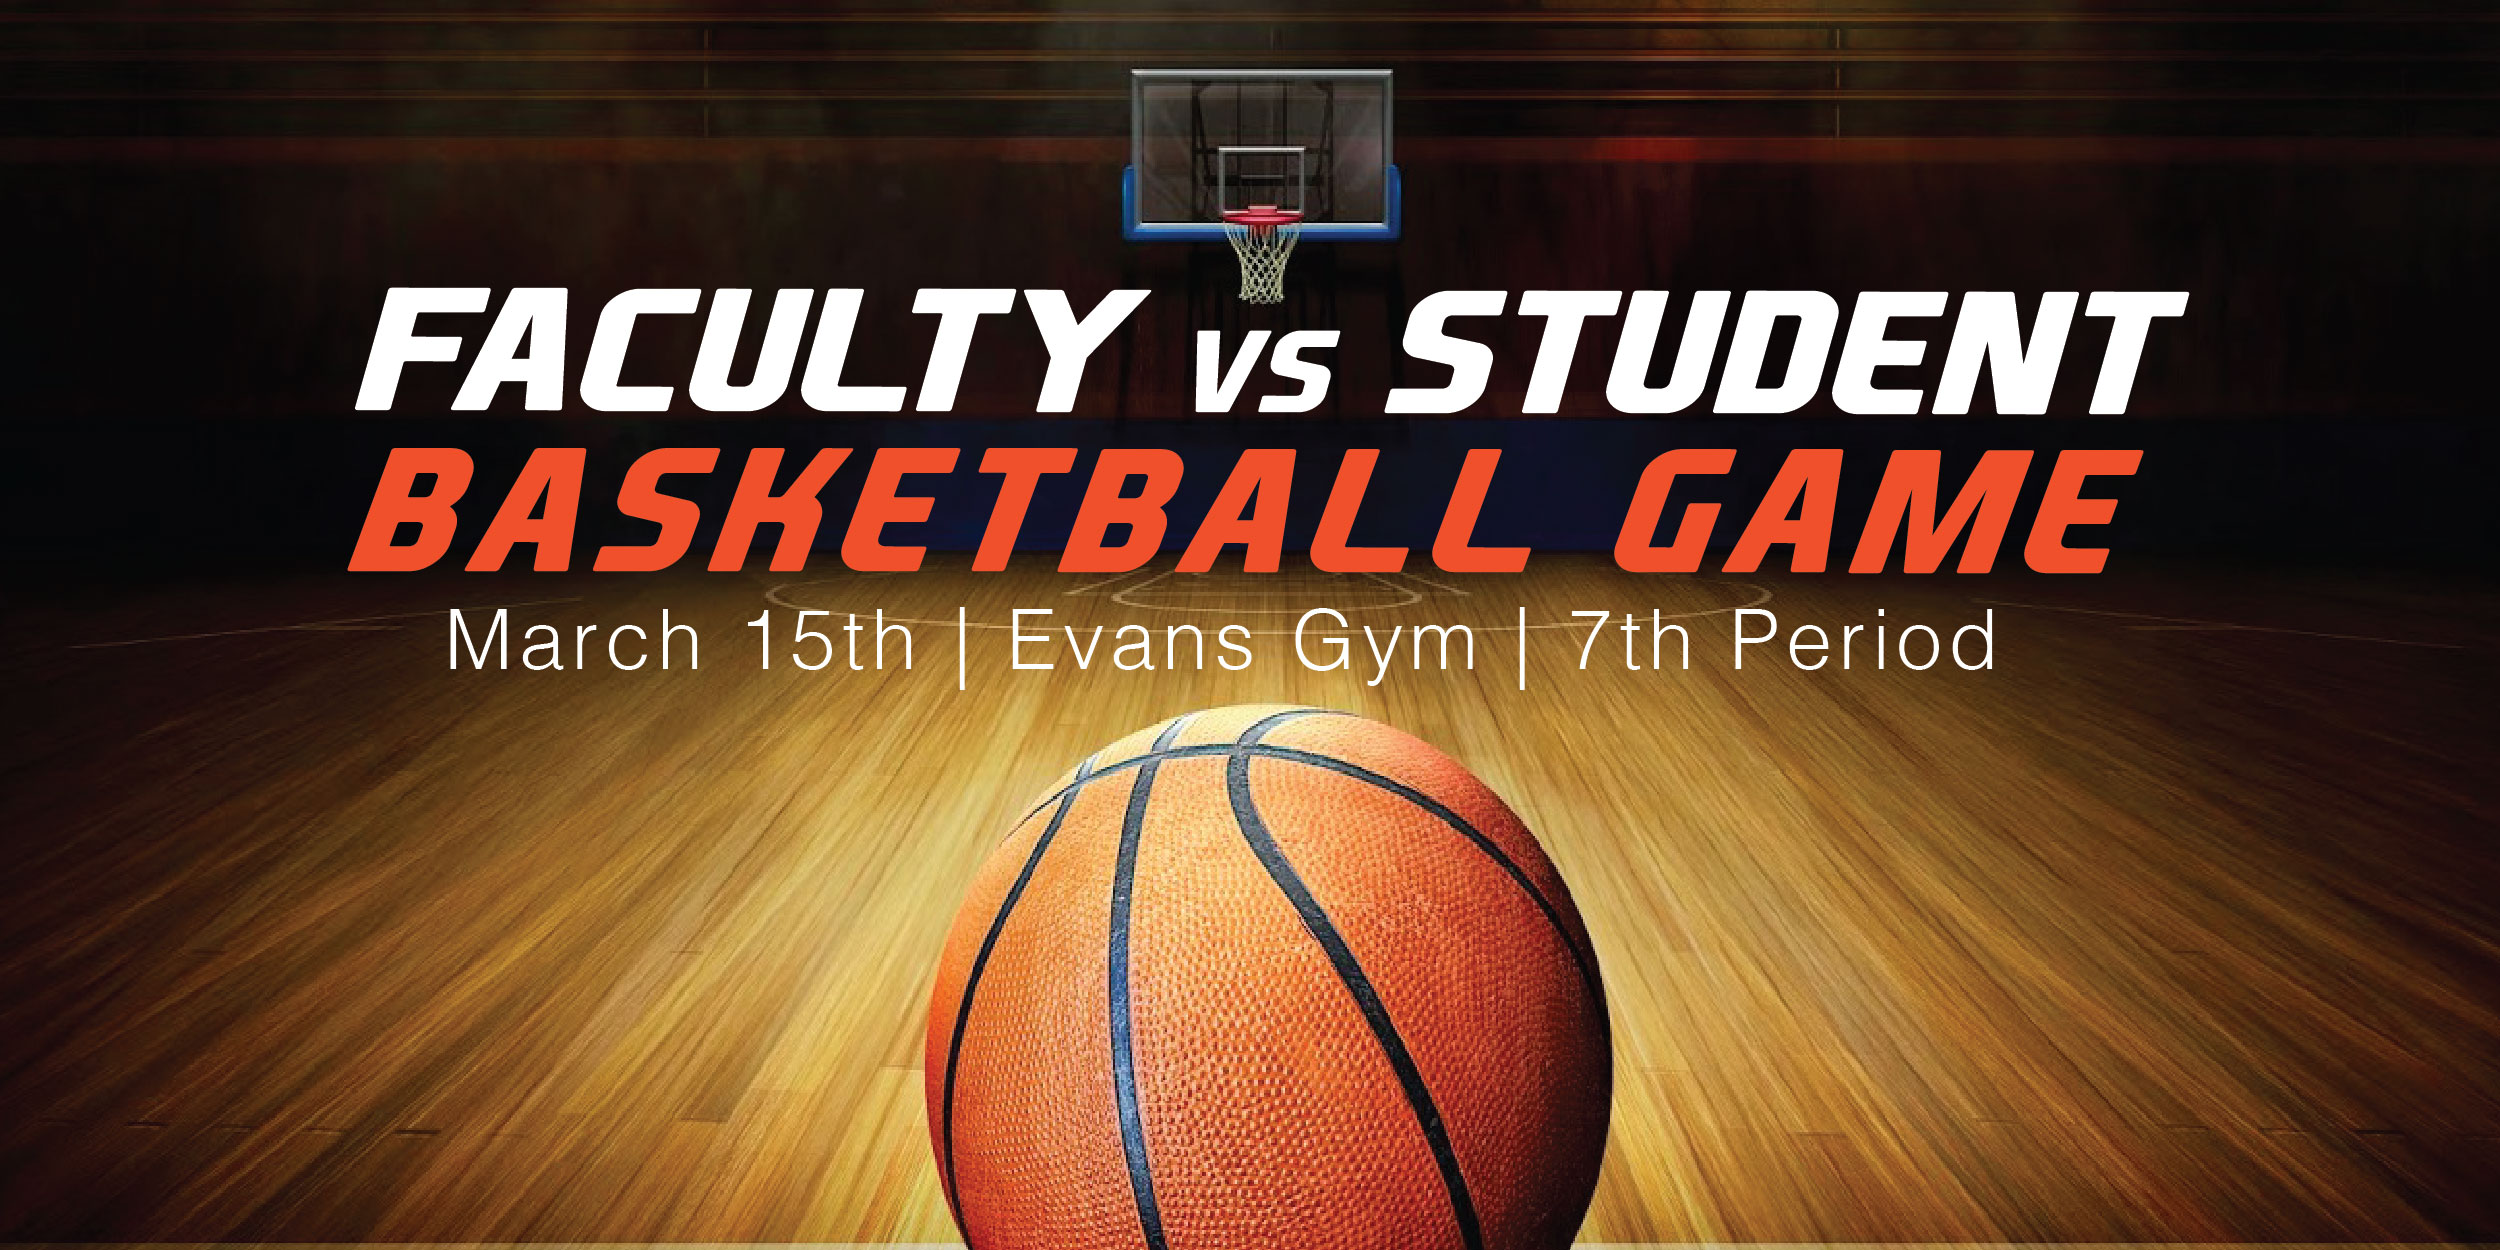 Faculty vs Students Basketball Game